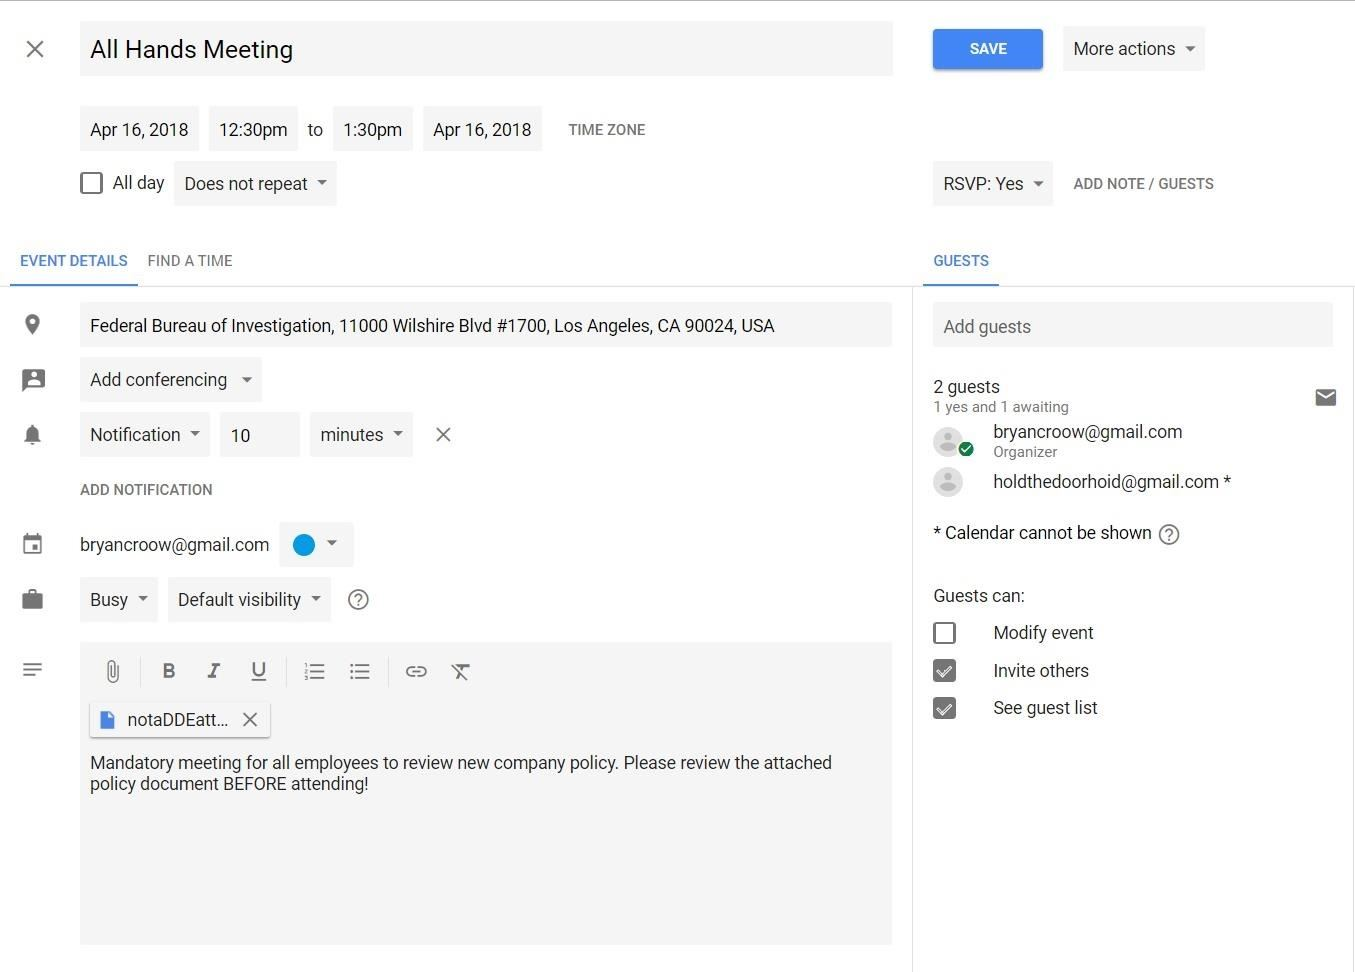 Advanced Phishing: How to Inject Meetings into Anyone's Google Calendar